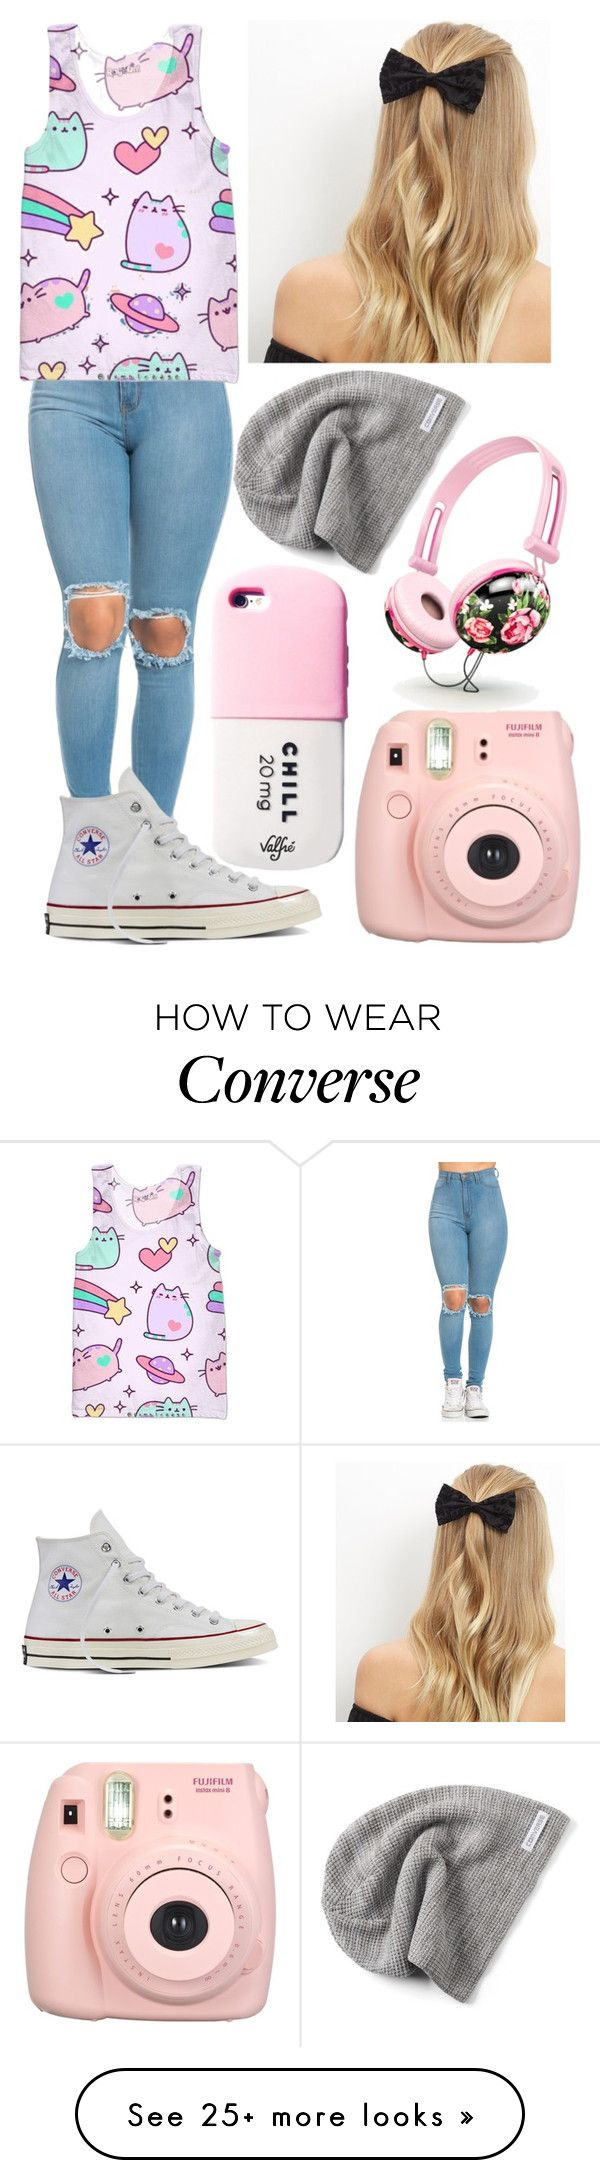 """Untitled #712"" by mriss-abbrie on Polyvore featuring Pusheen, Converse, Fujifilm, New Look and Valfré"